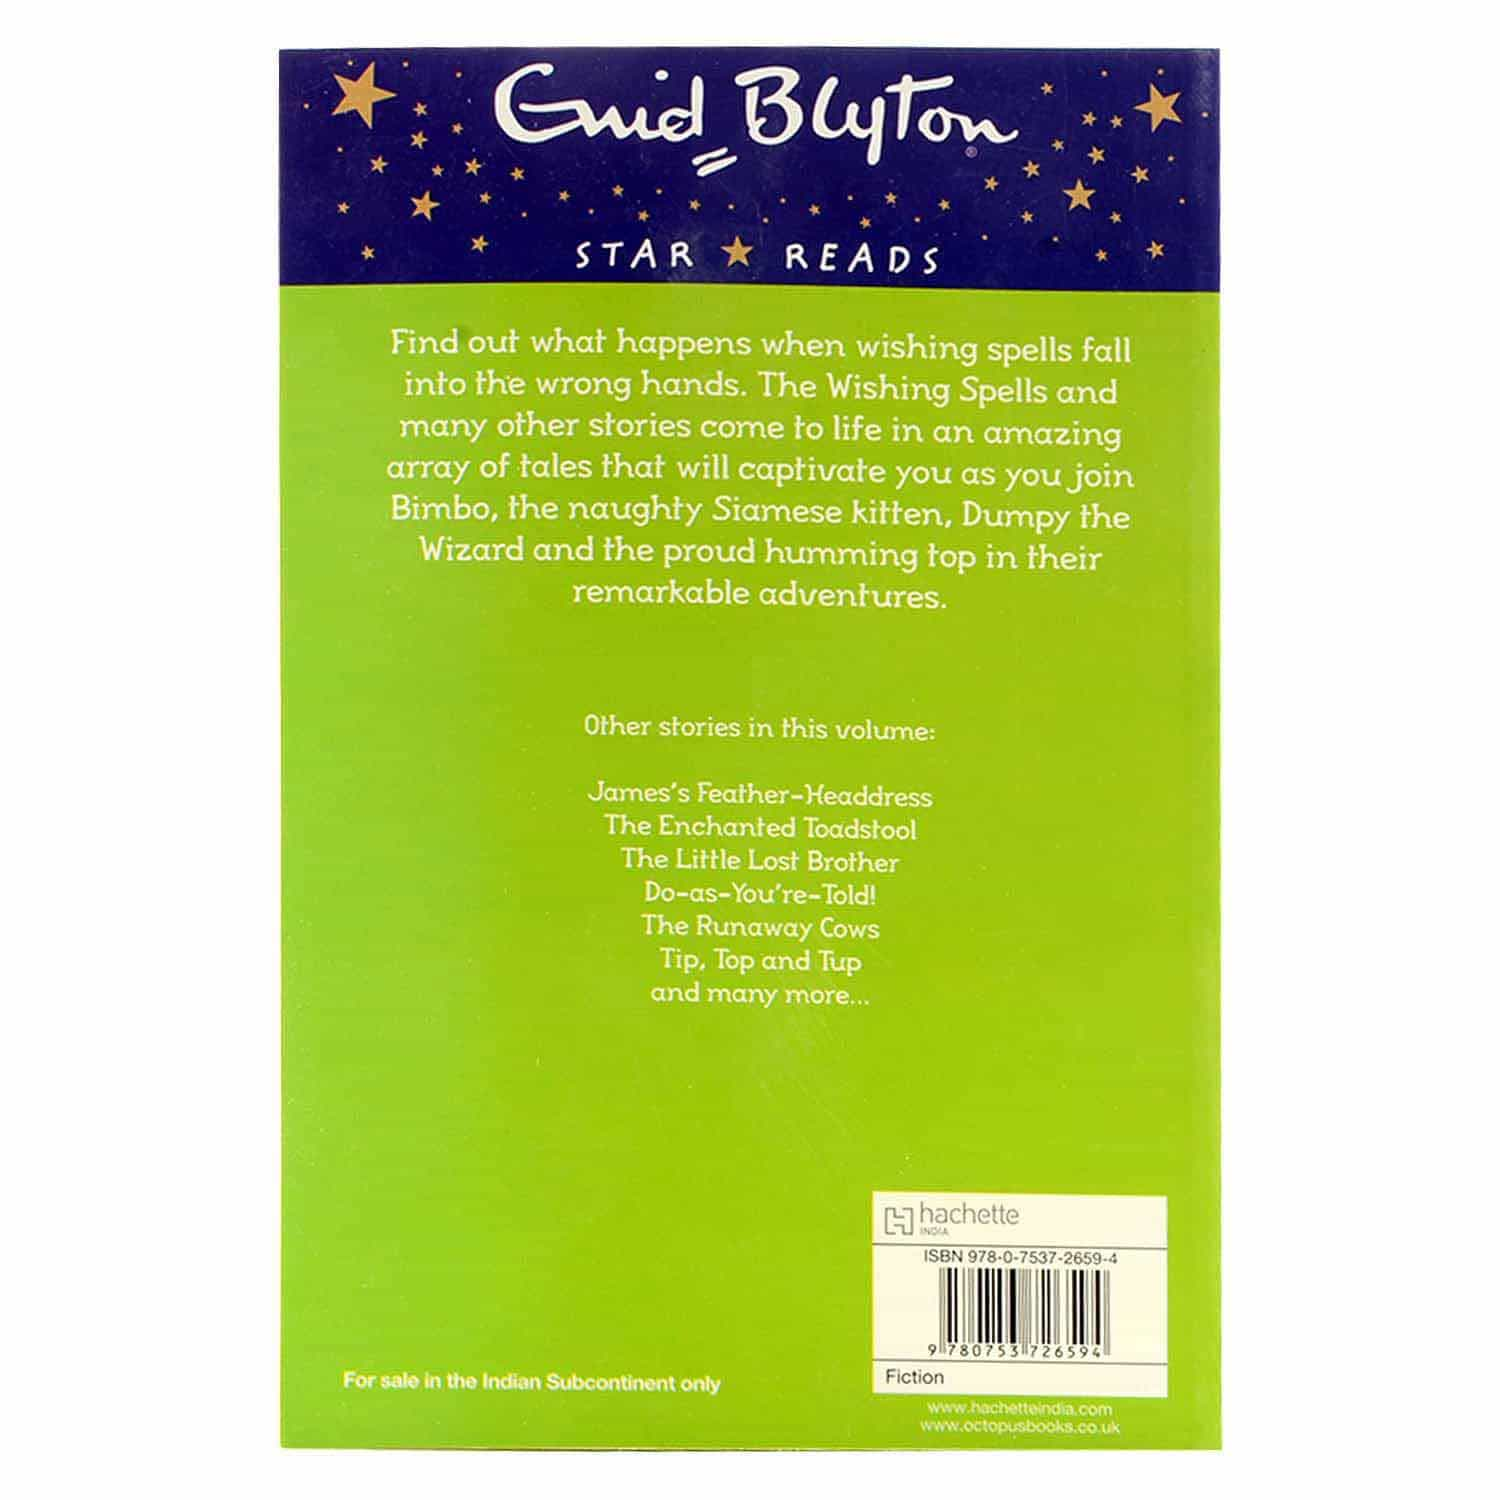 Enid Blyton - The Wishing Spells and Other Stories